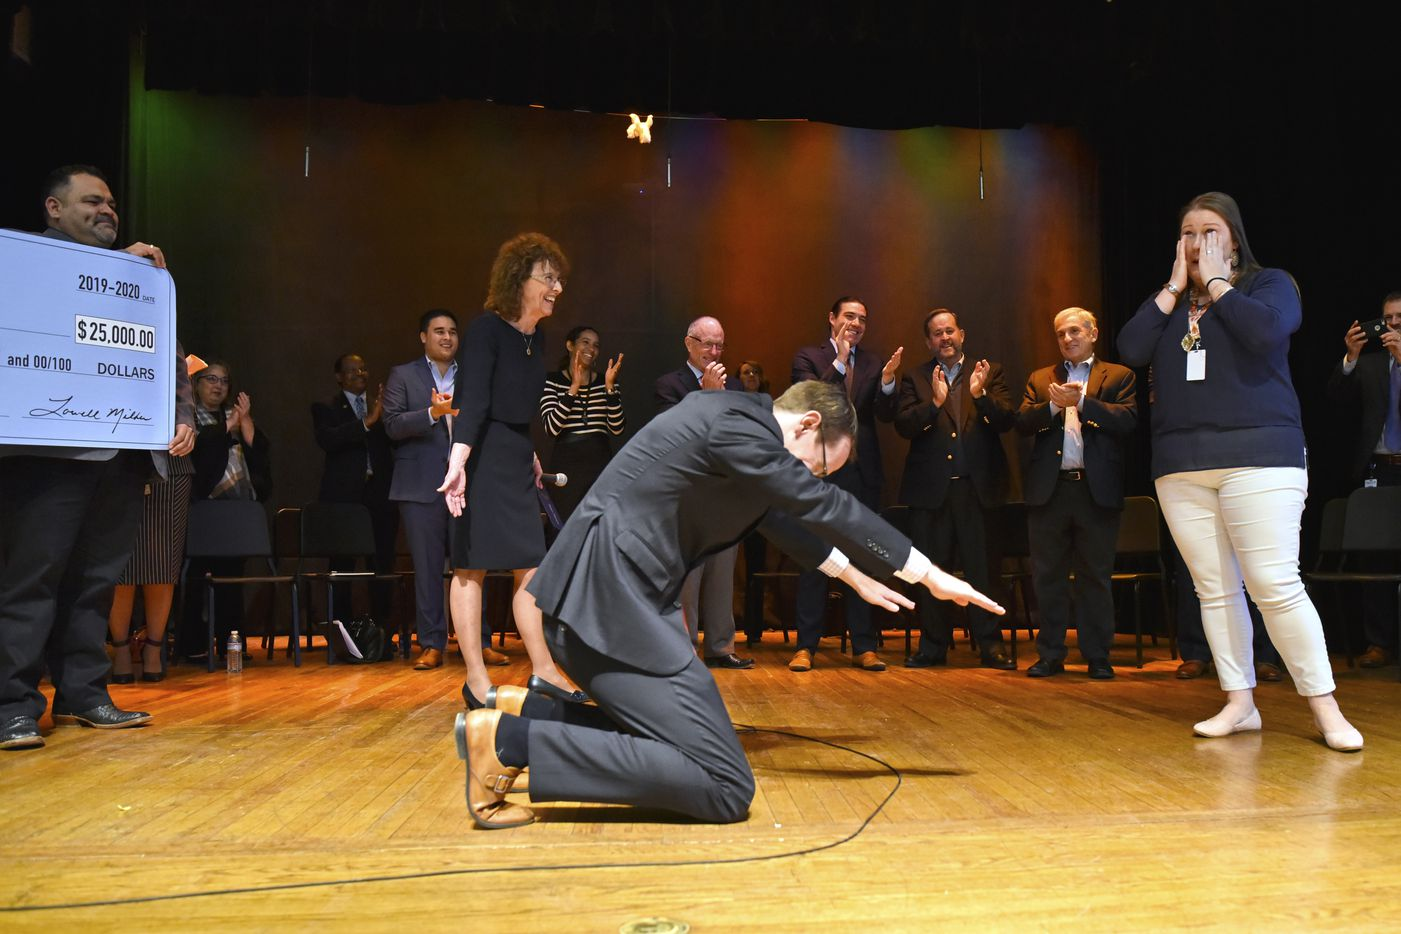 Texas education commissioner Mike Morath bows in front of Susan Moreno, right, a J.L. Long Middle School Spanish teacher, as she is honored as one of the nation's best educators. She was named the 2019 Milken Educator Award winner, a prize that comes with a $25,000 check.